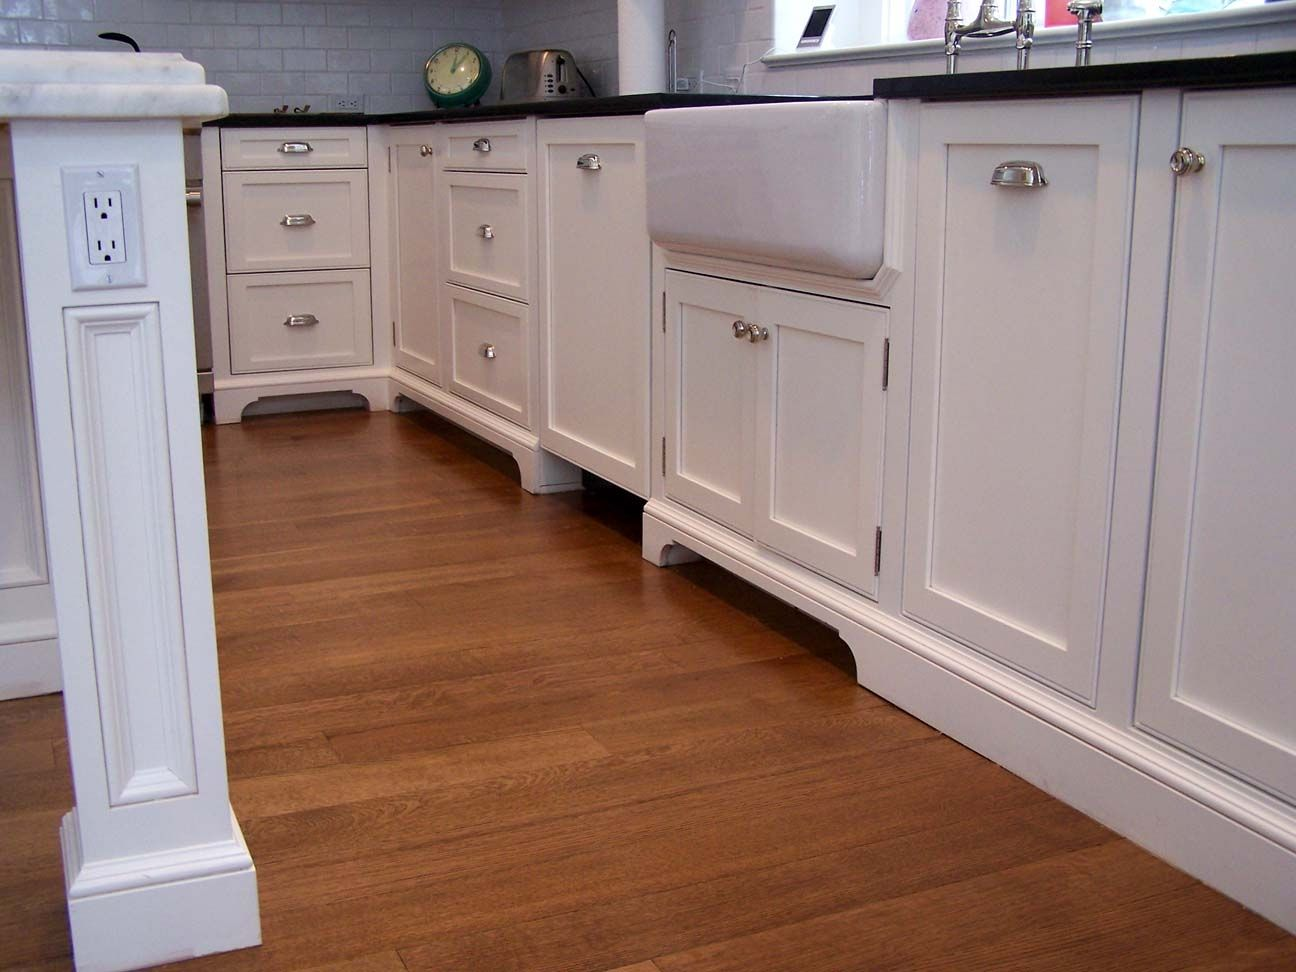 Kitchen Base Cabinets On Legs Kitchen Cabinets That Look Like Furniture Kitchen Base Cabinets Kitchen Cabinets Trim